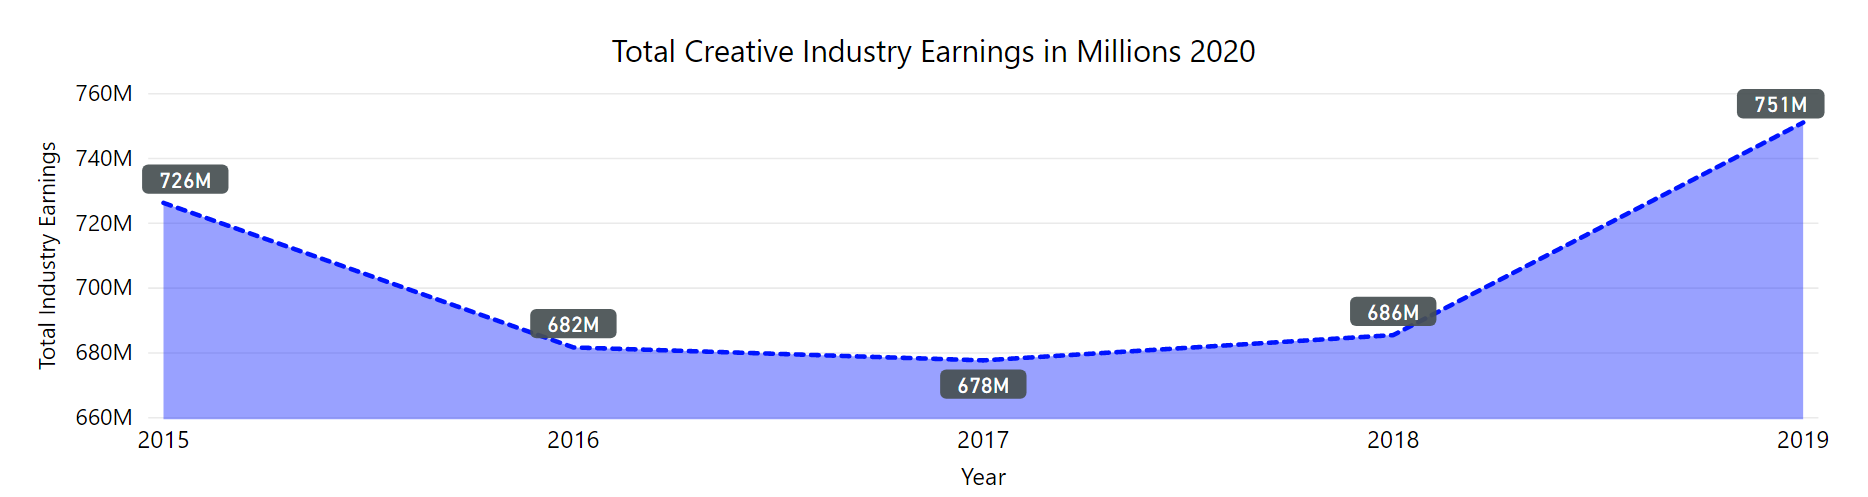 graph of creative industry earnings from 2015 to 2019. Numbers decreased from 2015 to 2017 but then rose in 2018 and 2019.